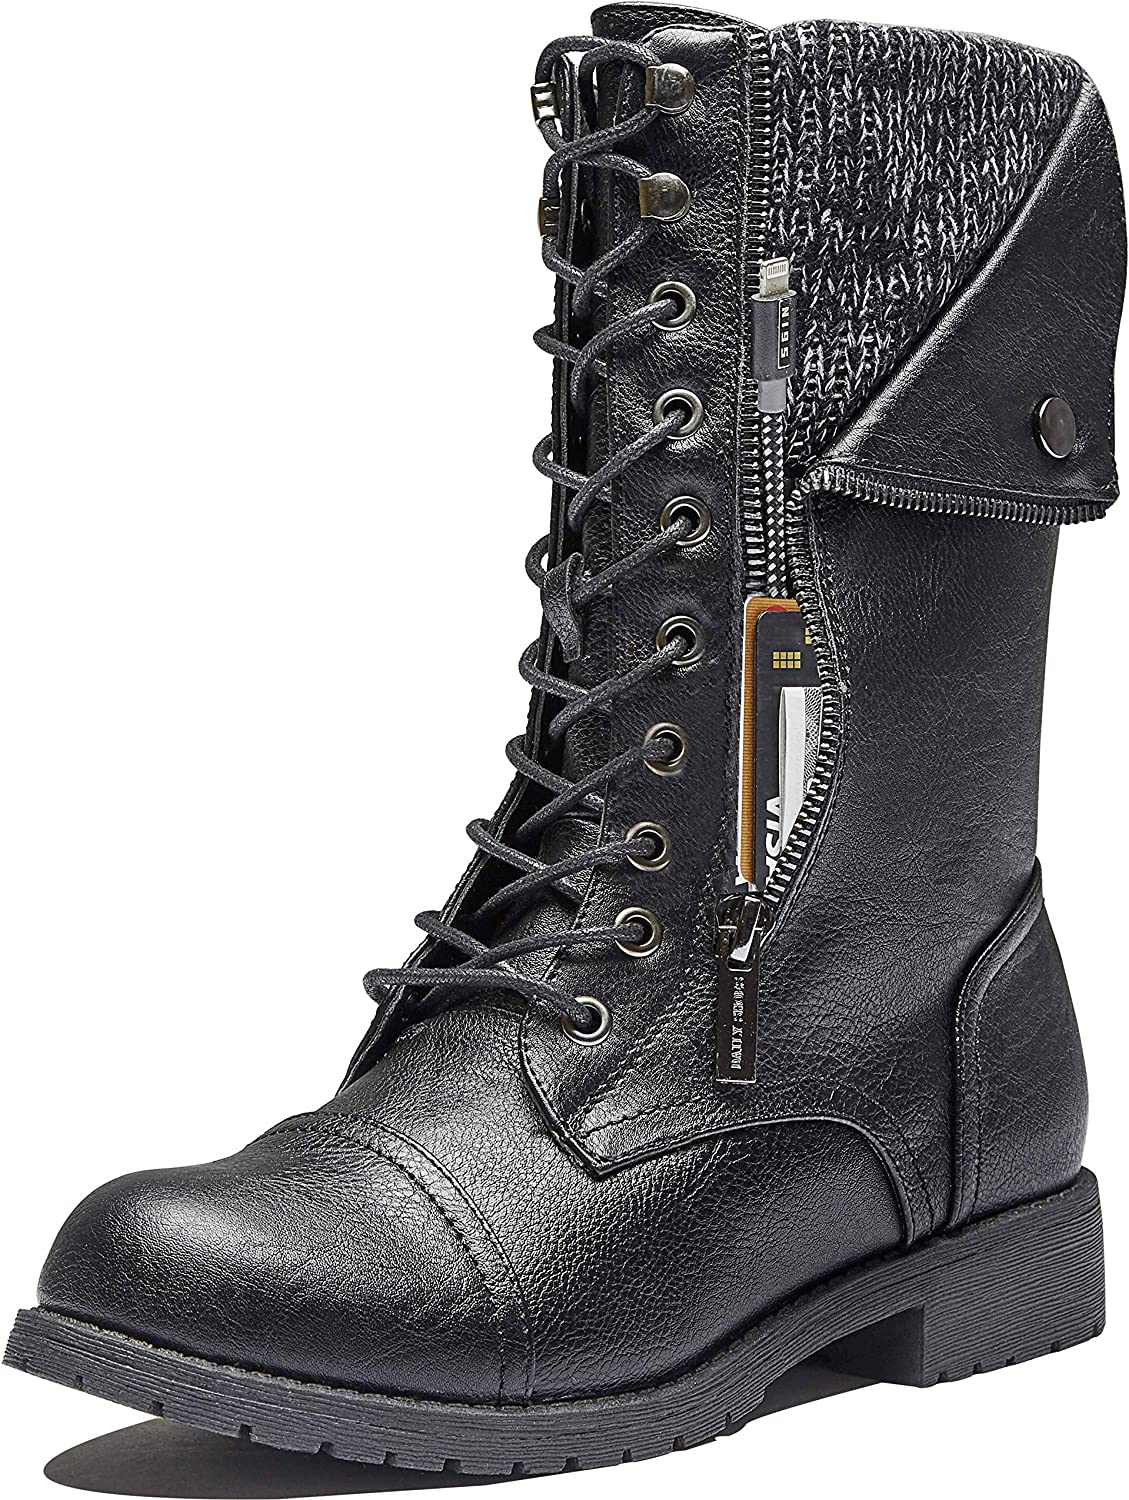 DailyShoes Women's Ankle High Exclusive Credit Card Side Zipper Pocket Hiking Booties